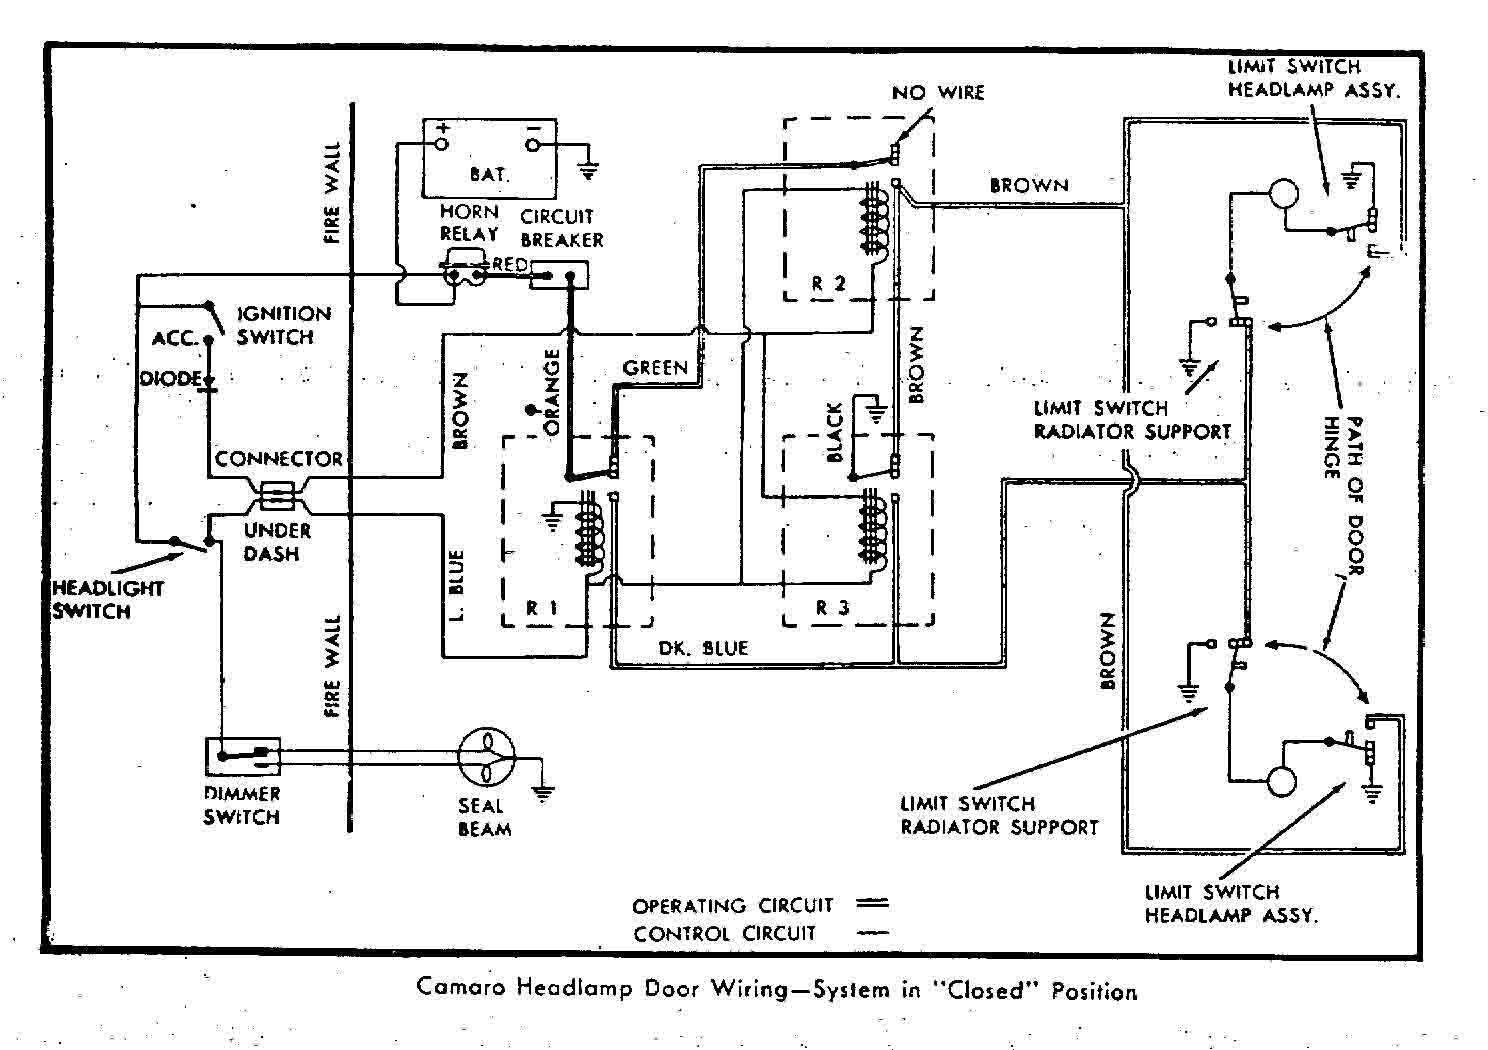 wiring diagram for 1968 camaro – readingrat, Wiring diagram